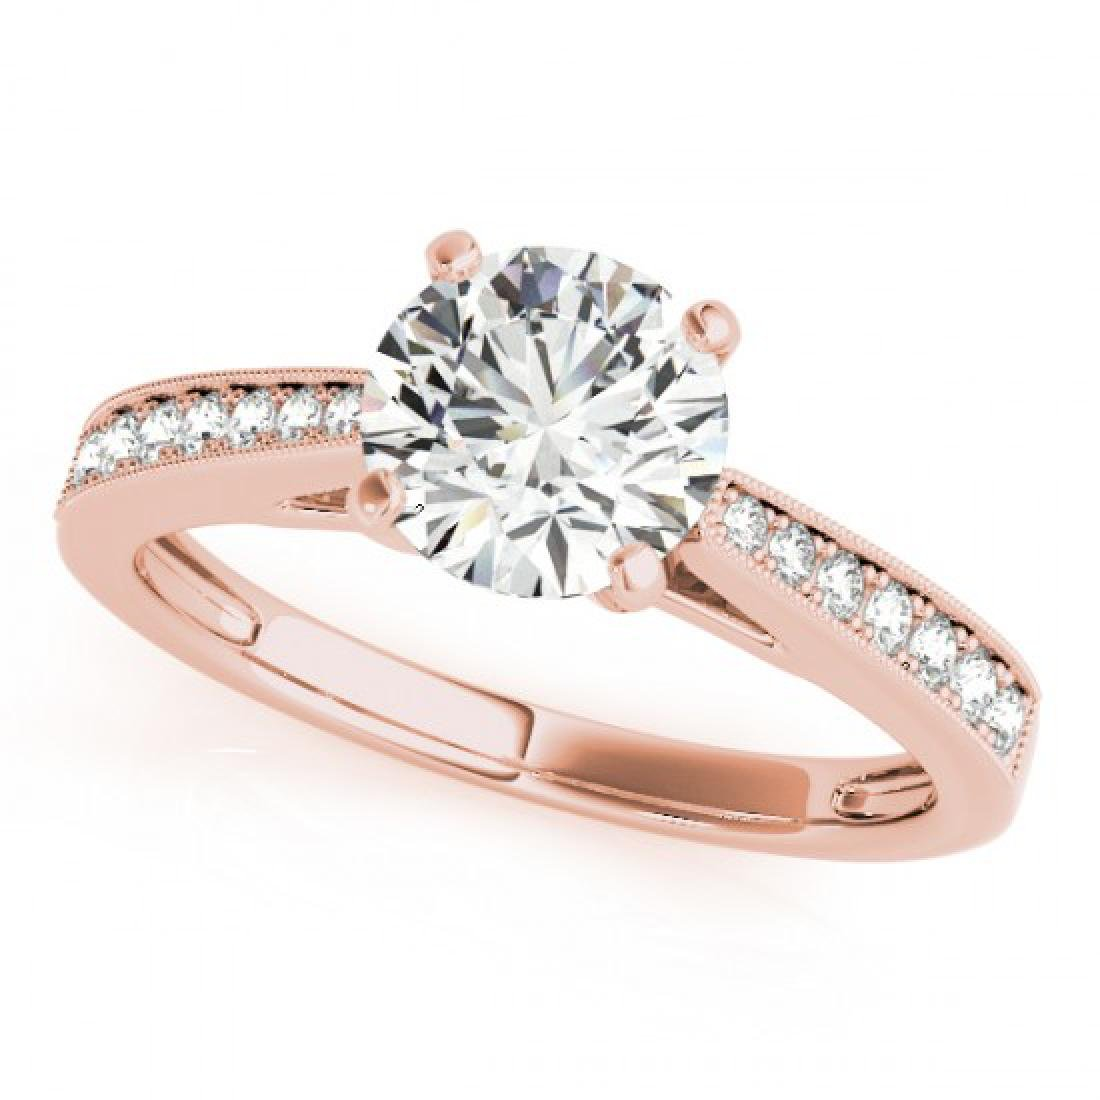 0.4 CTW Certified VS/SI Diamond Solitaire Ring 14K Rose